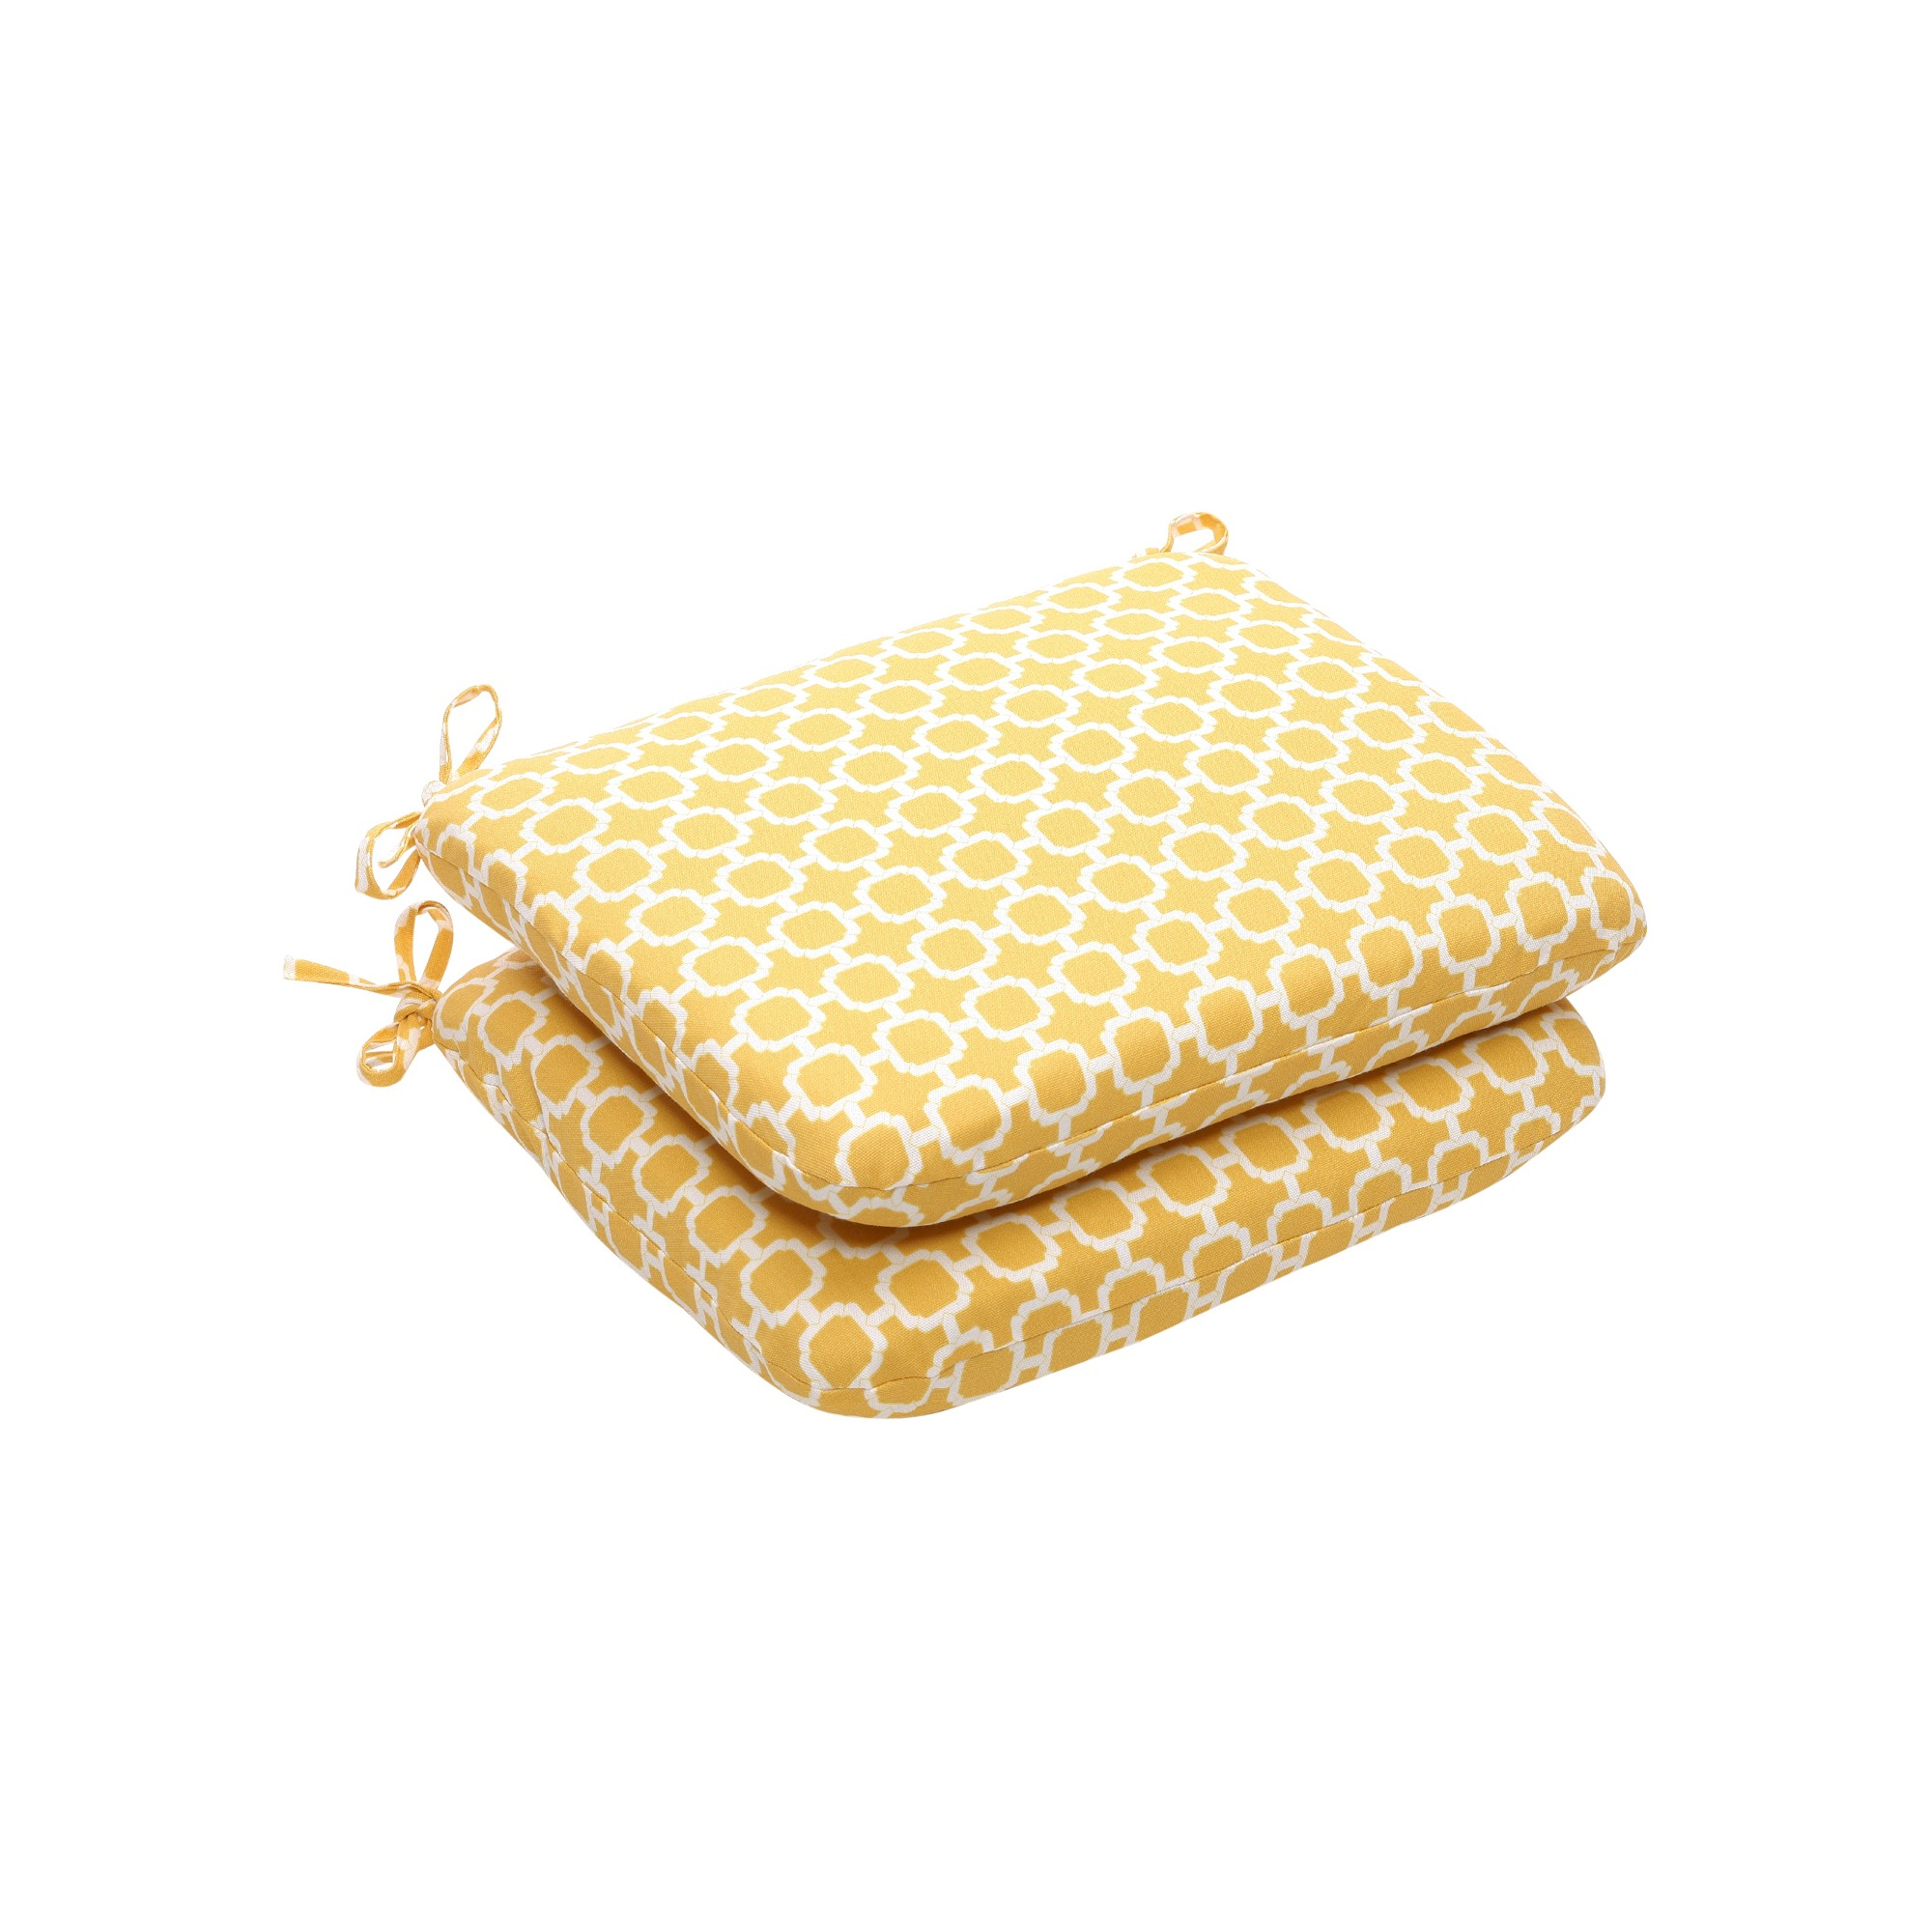 Outdoor 2 Pc Chair Cushion Set - Yellow/White Geometric - Pillow Perfect